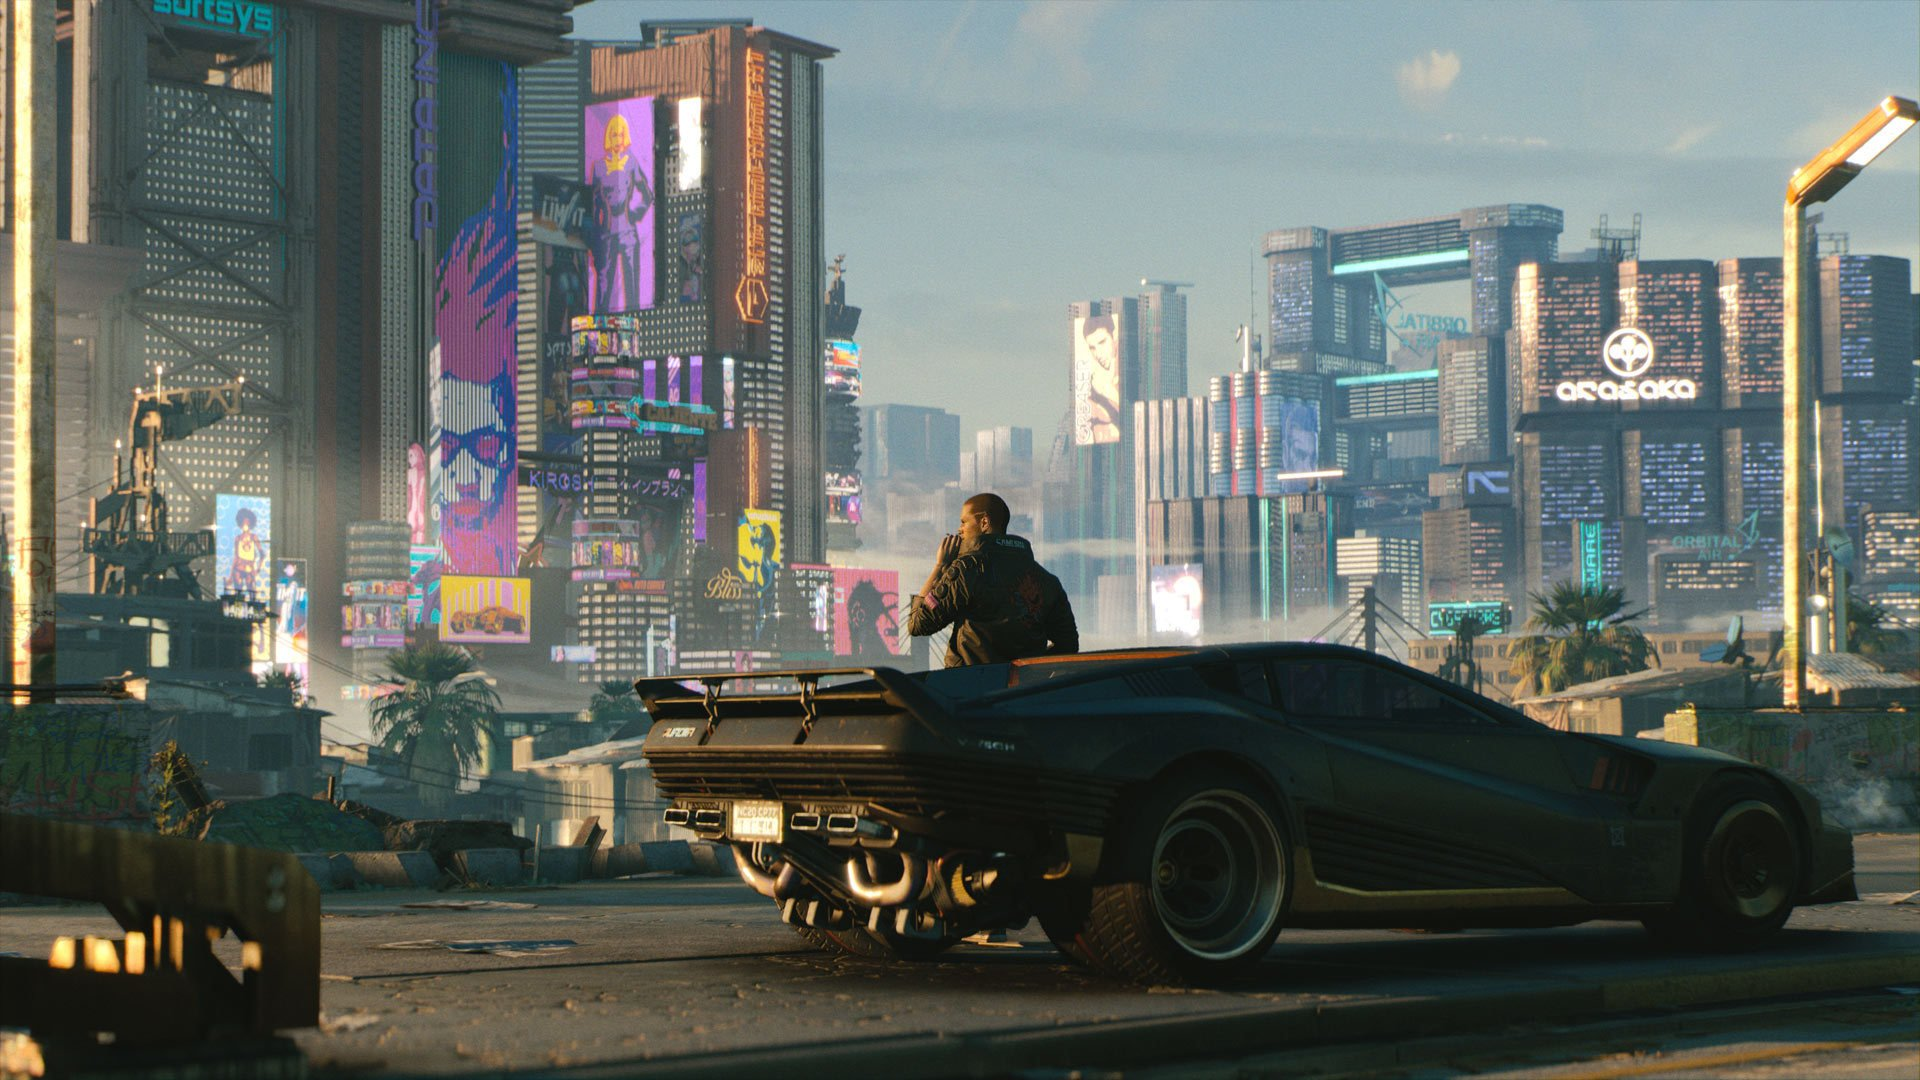 Cyberpunk 2077 will be present at E3 2019.